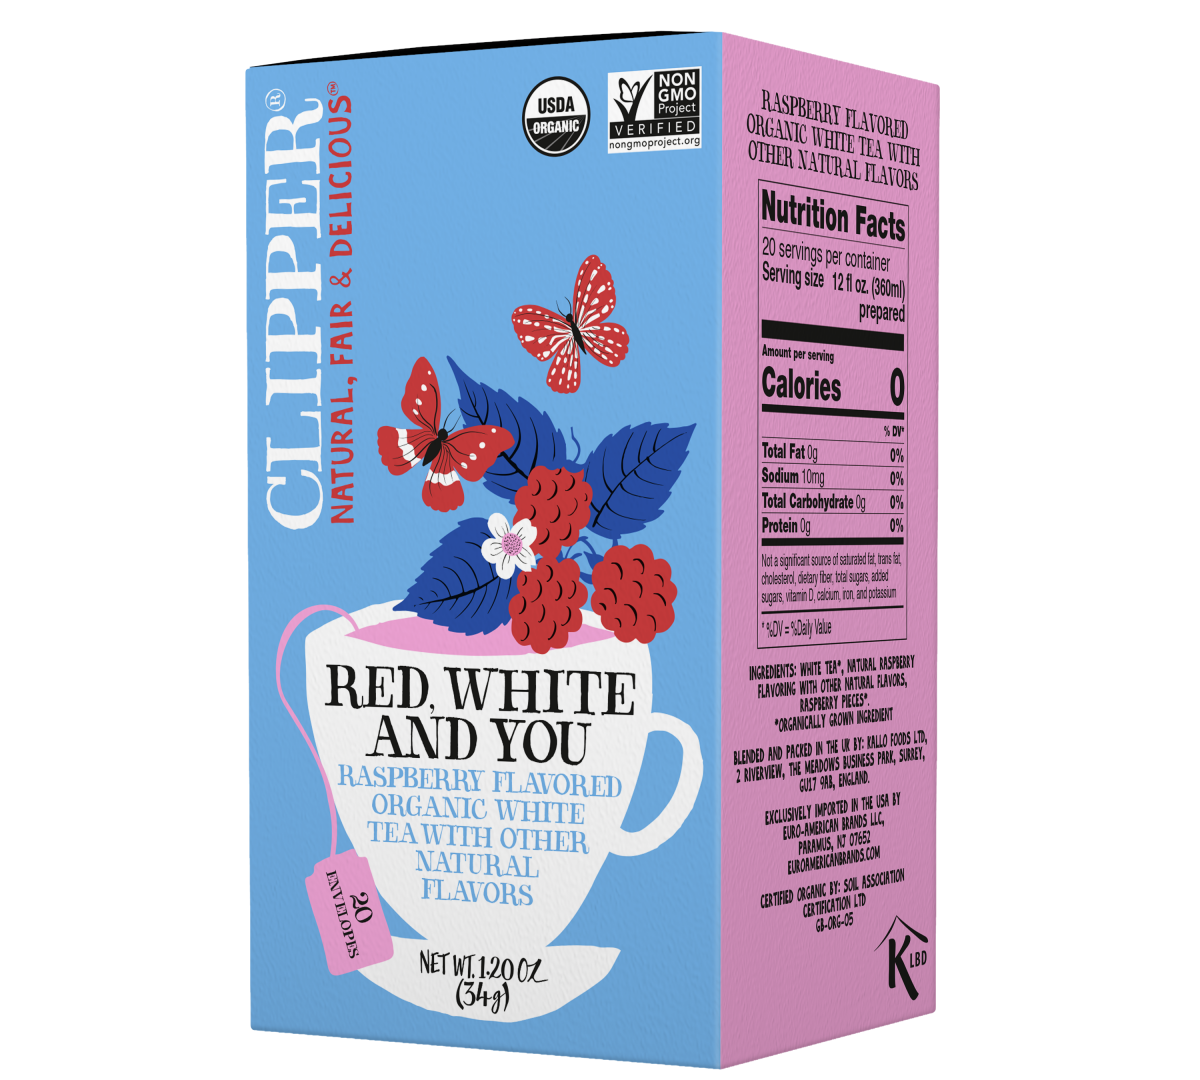 Red White and You organic white tea